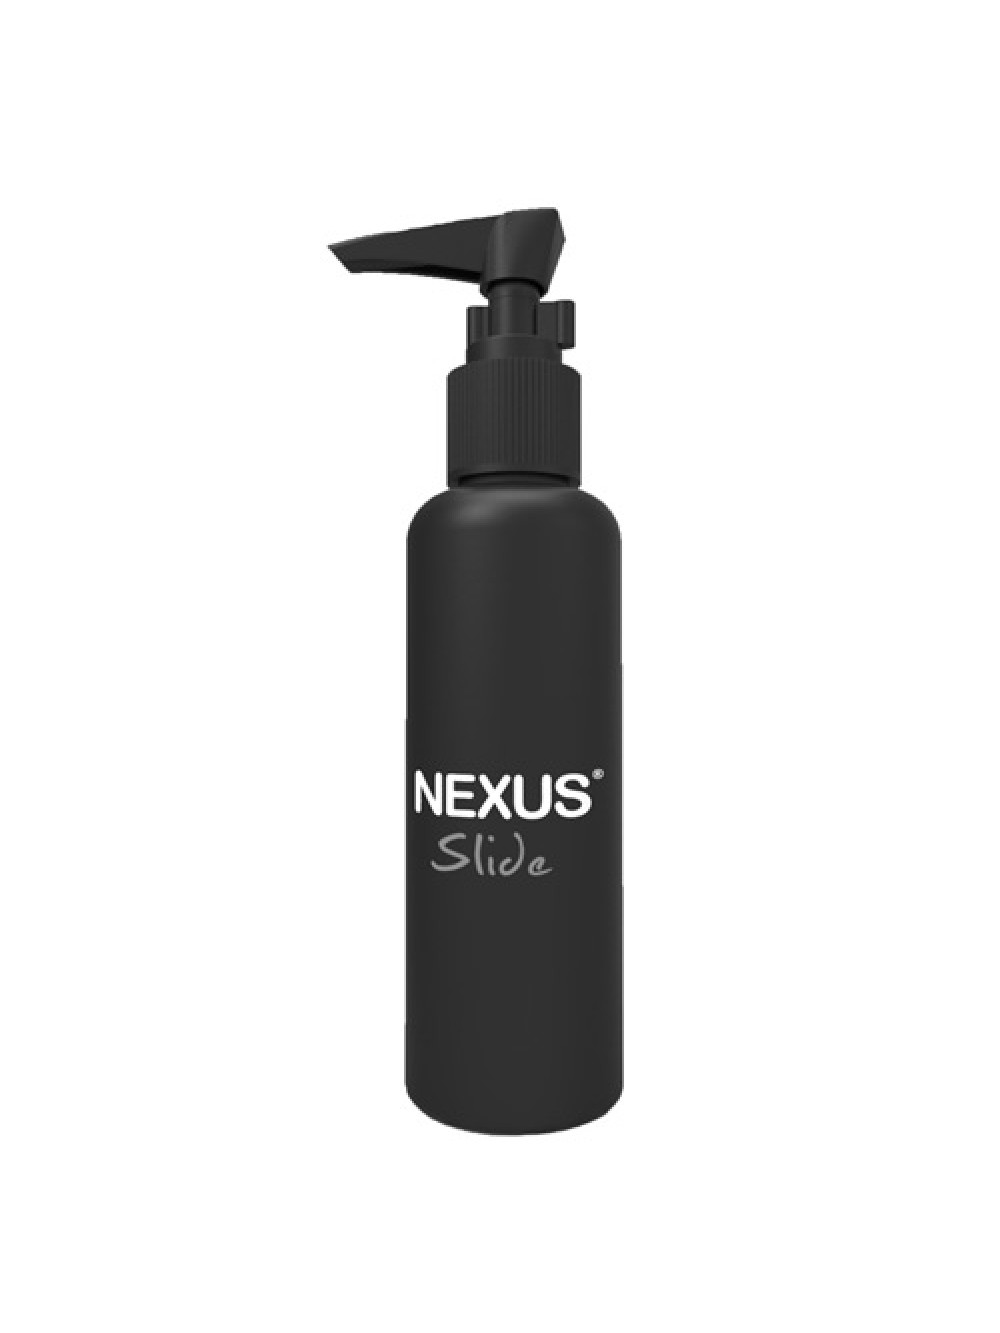 Nexus Slide Water Based Lubricant